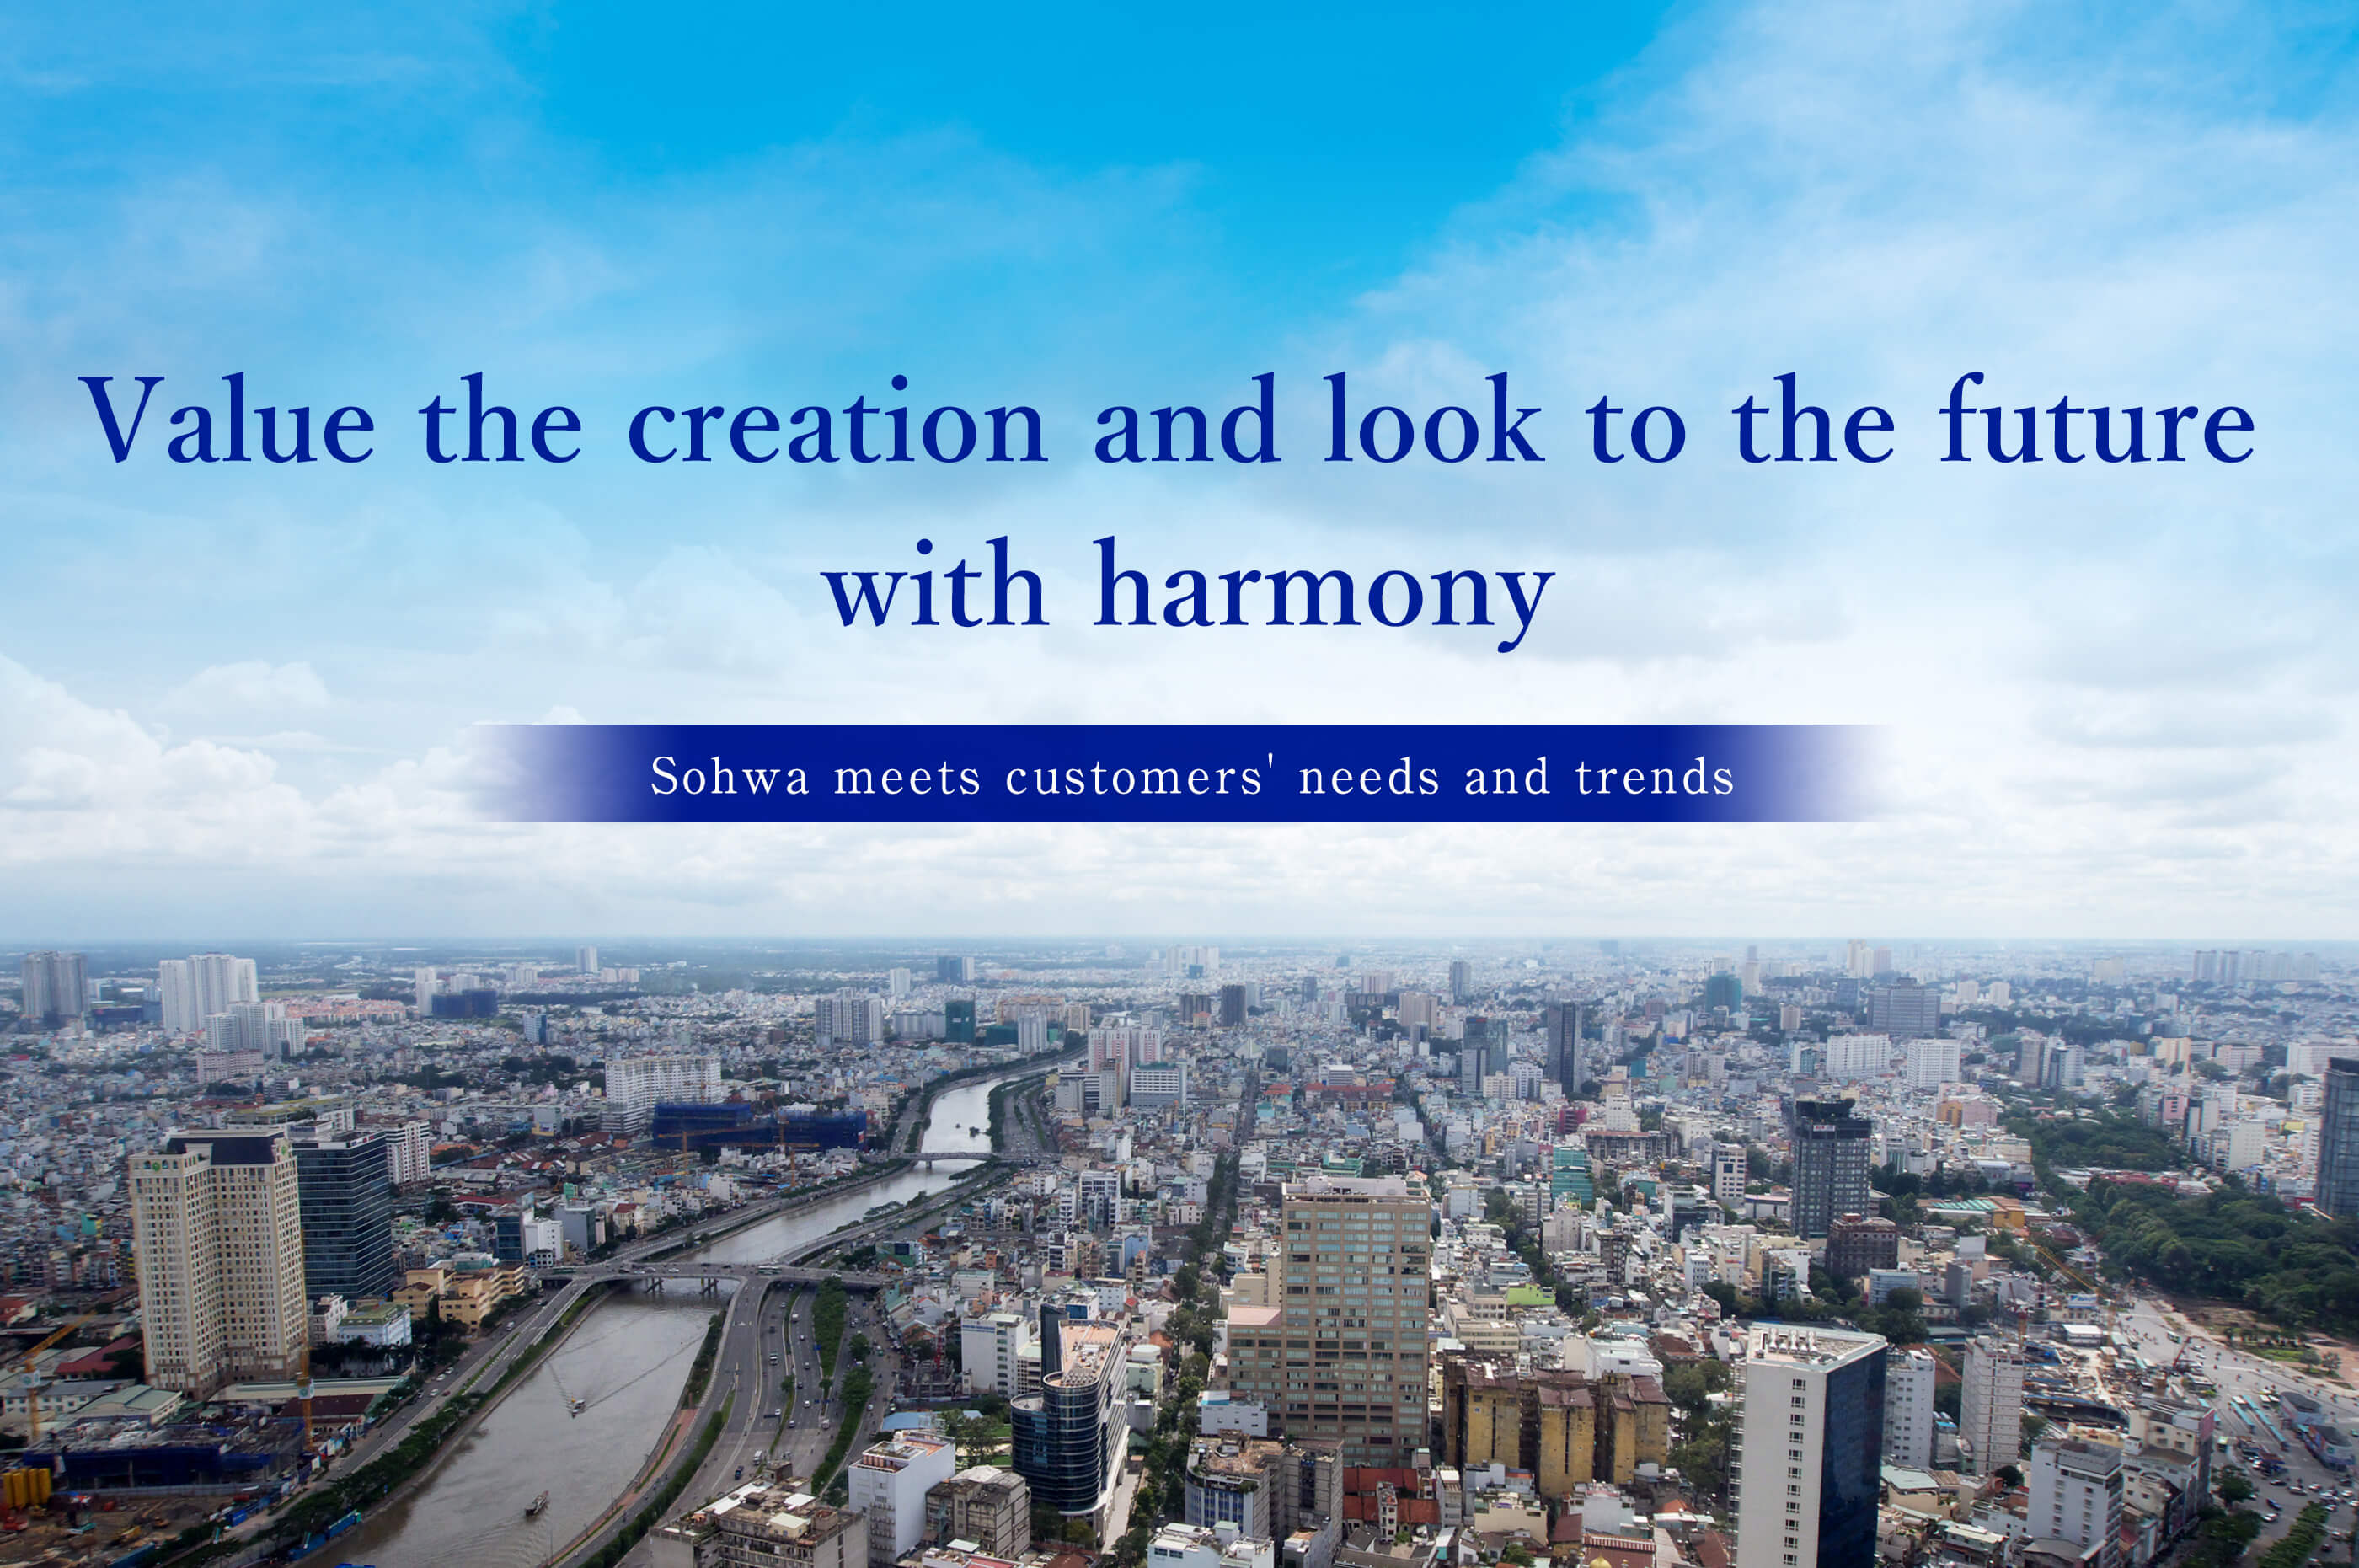 Value the creation and look to the future with harmony